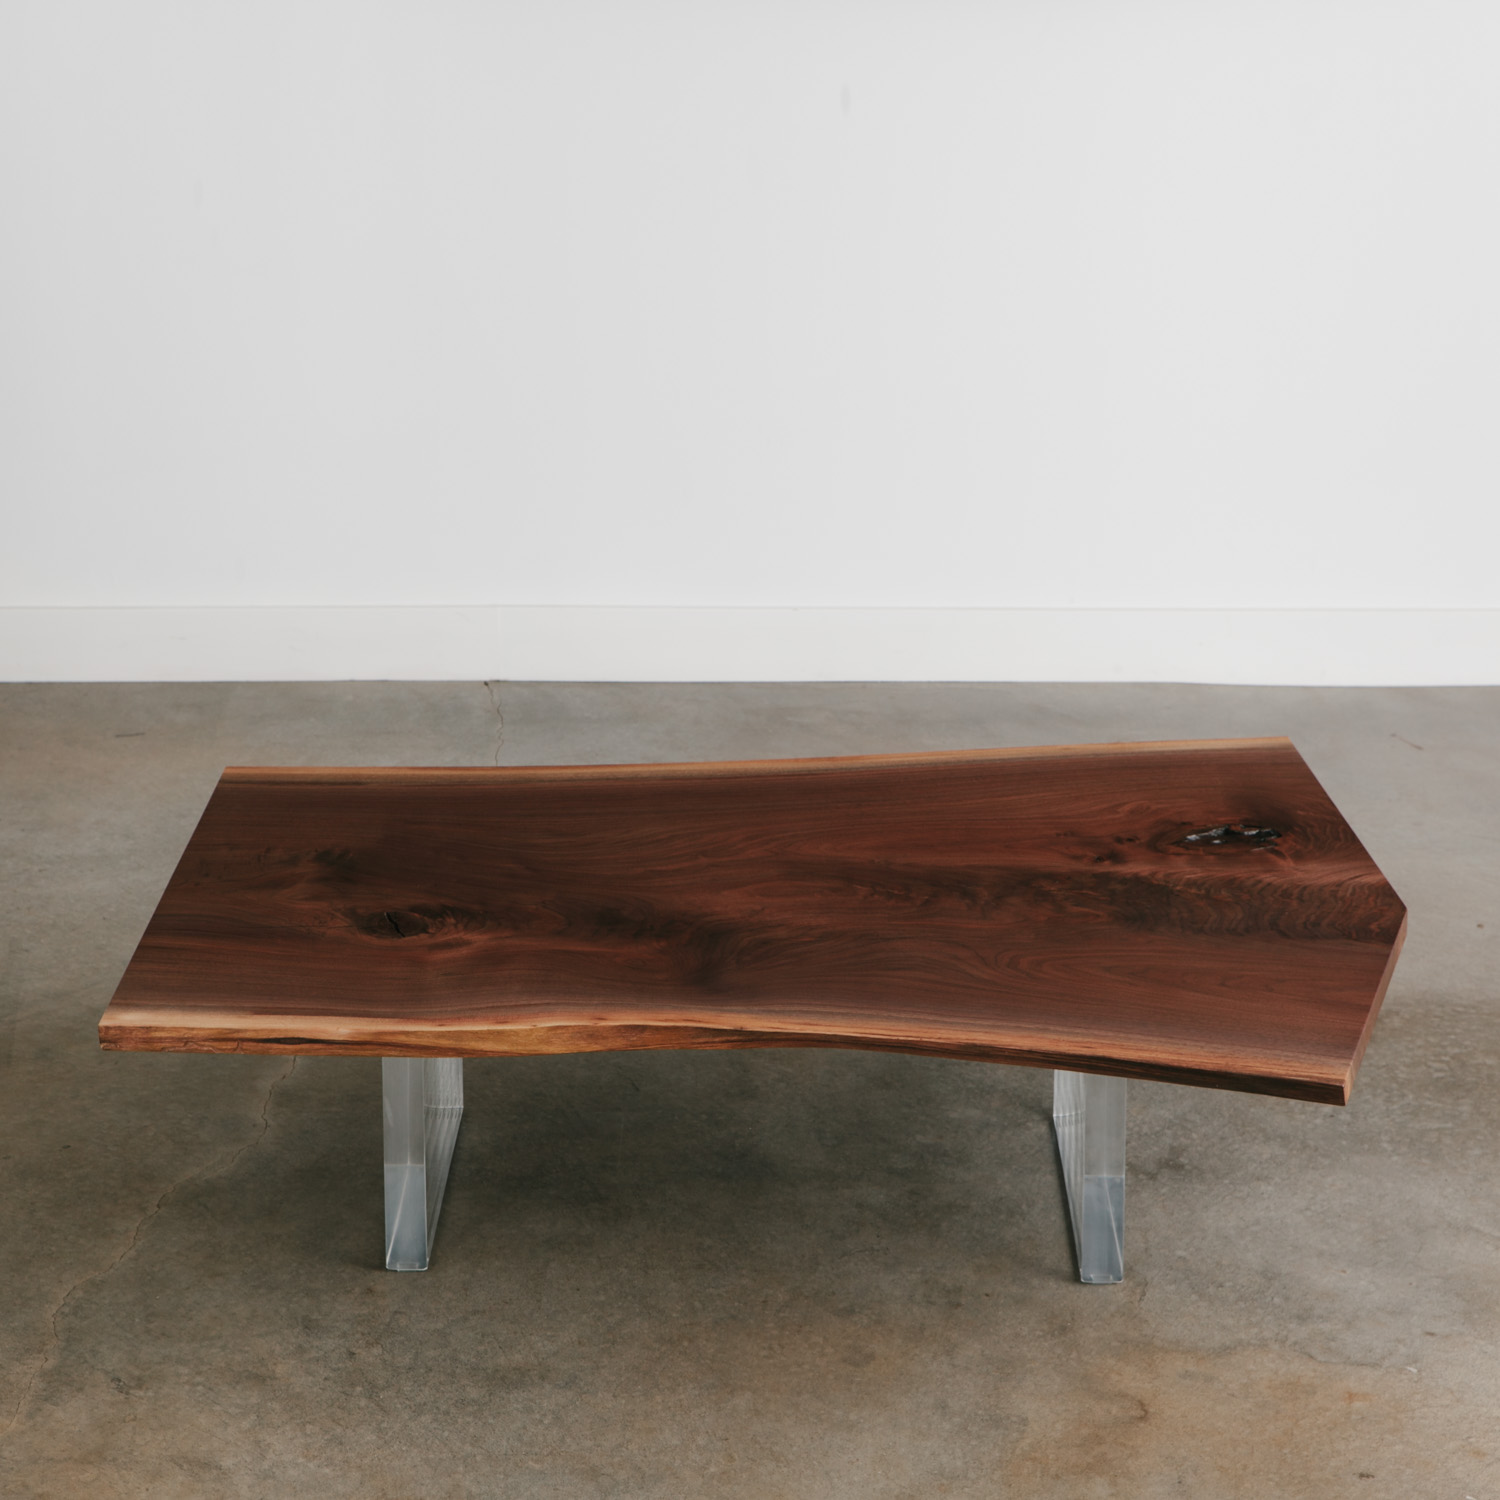 Handmade Live Edge Walnut Table With Acrylic Legs Elko Hardwoods Modern Live Edge Furniture Dining Coffee Tables Desks Benches